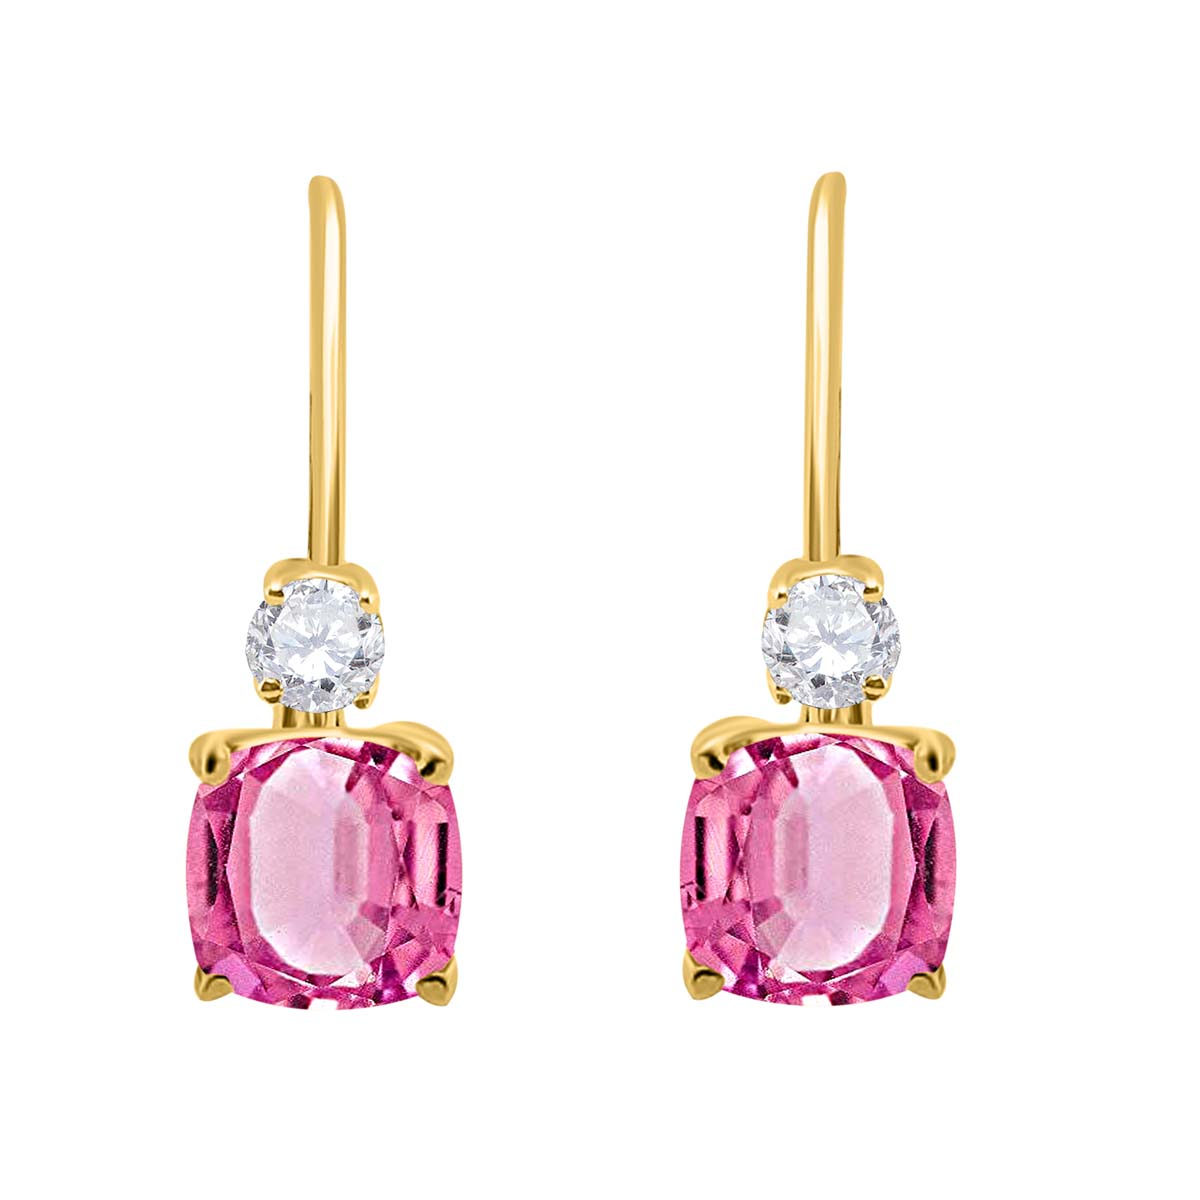 2.65 Carat. Cushion Cut Gemstone And Diamond Leverback Earrings sets for girls or Women Pink Topaz 14K Yellow Gold 4 Prong-Setting Cushion adultsthis is the lovely gift for anniversary